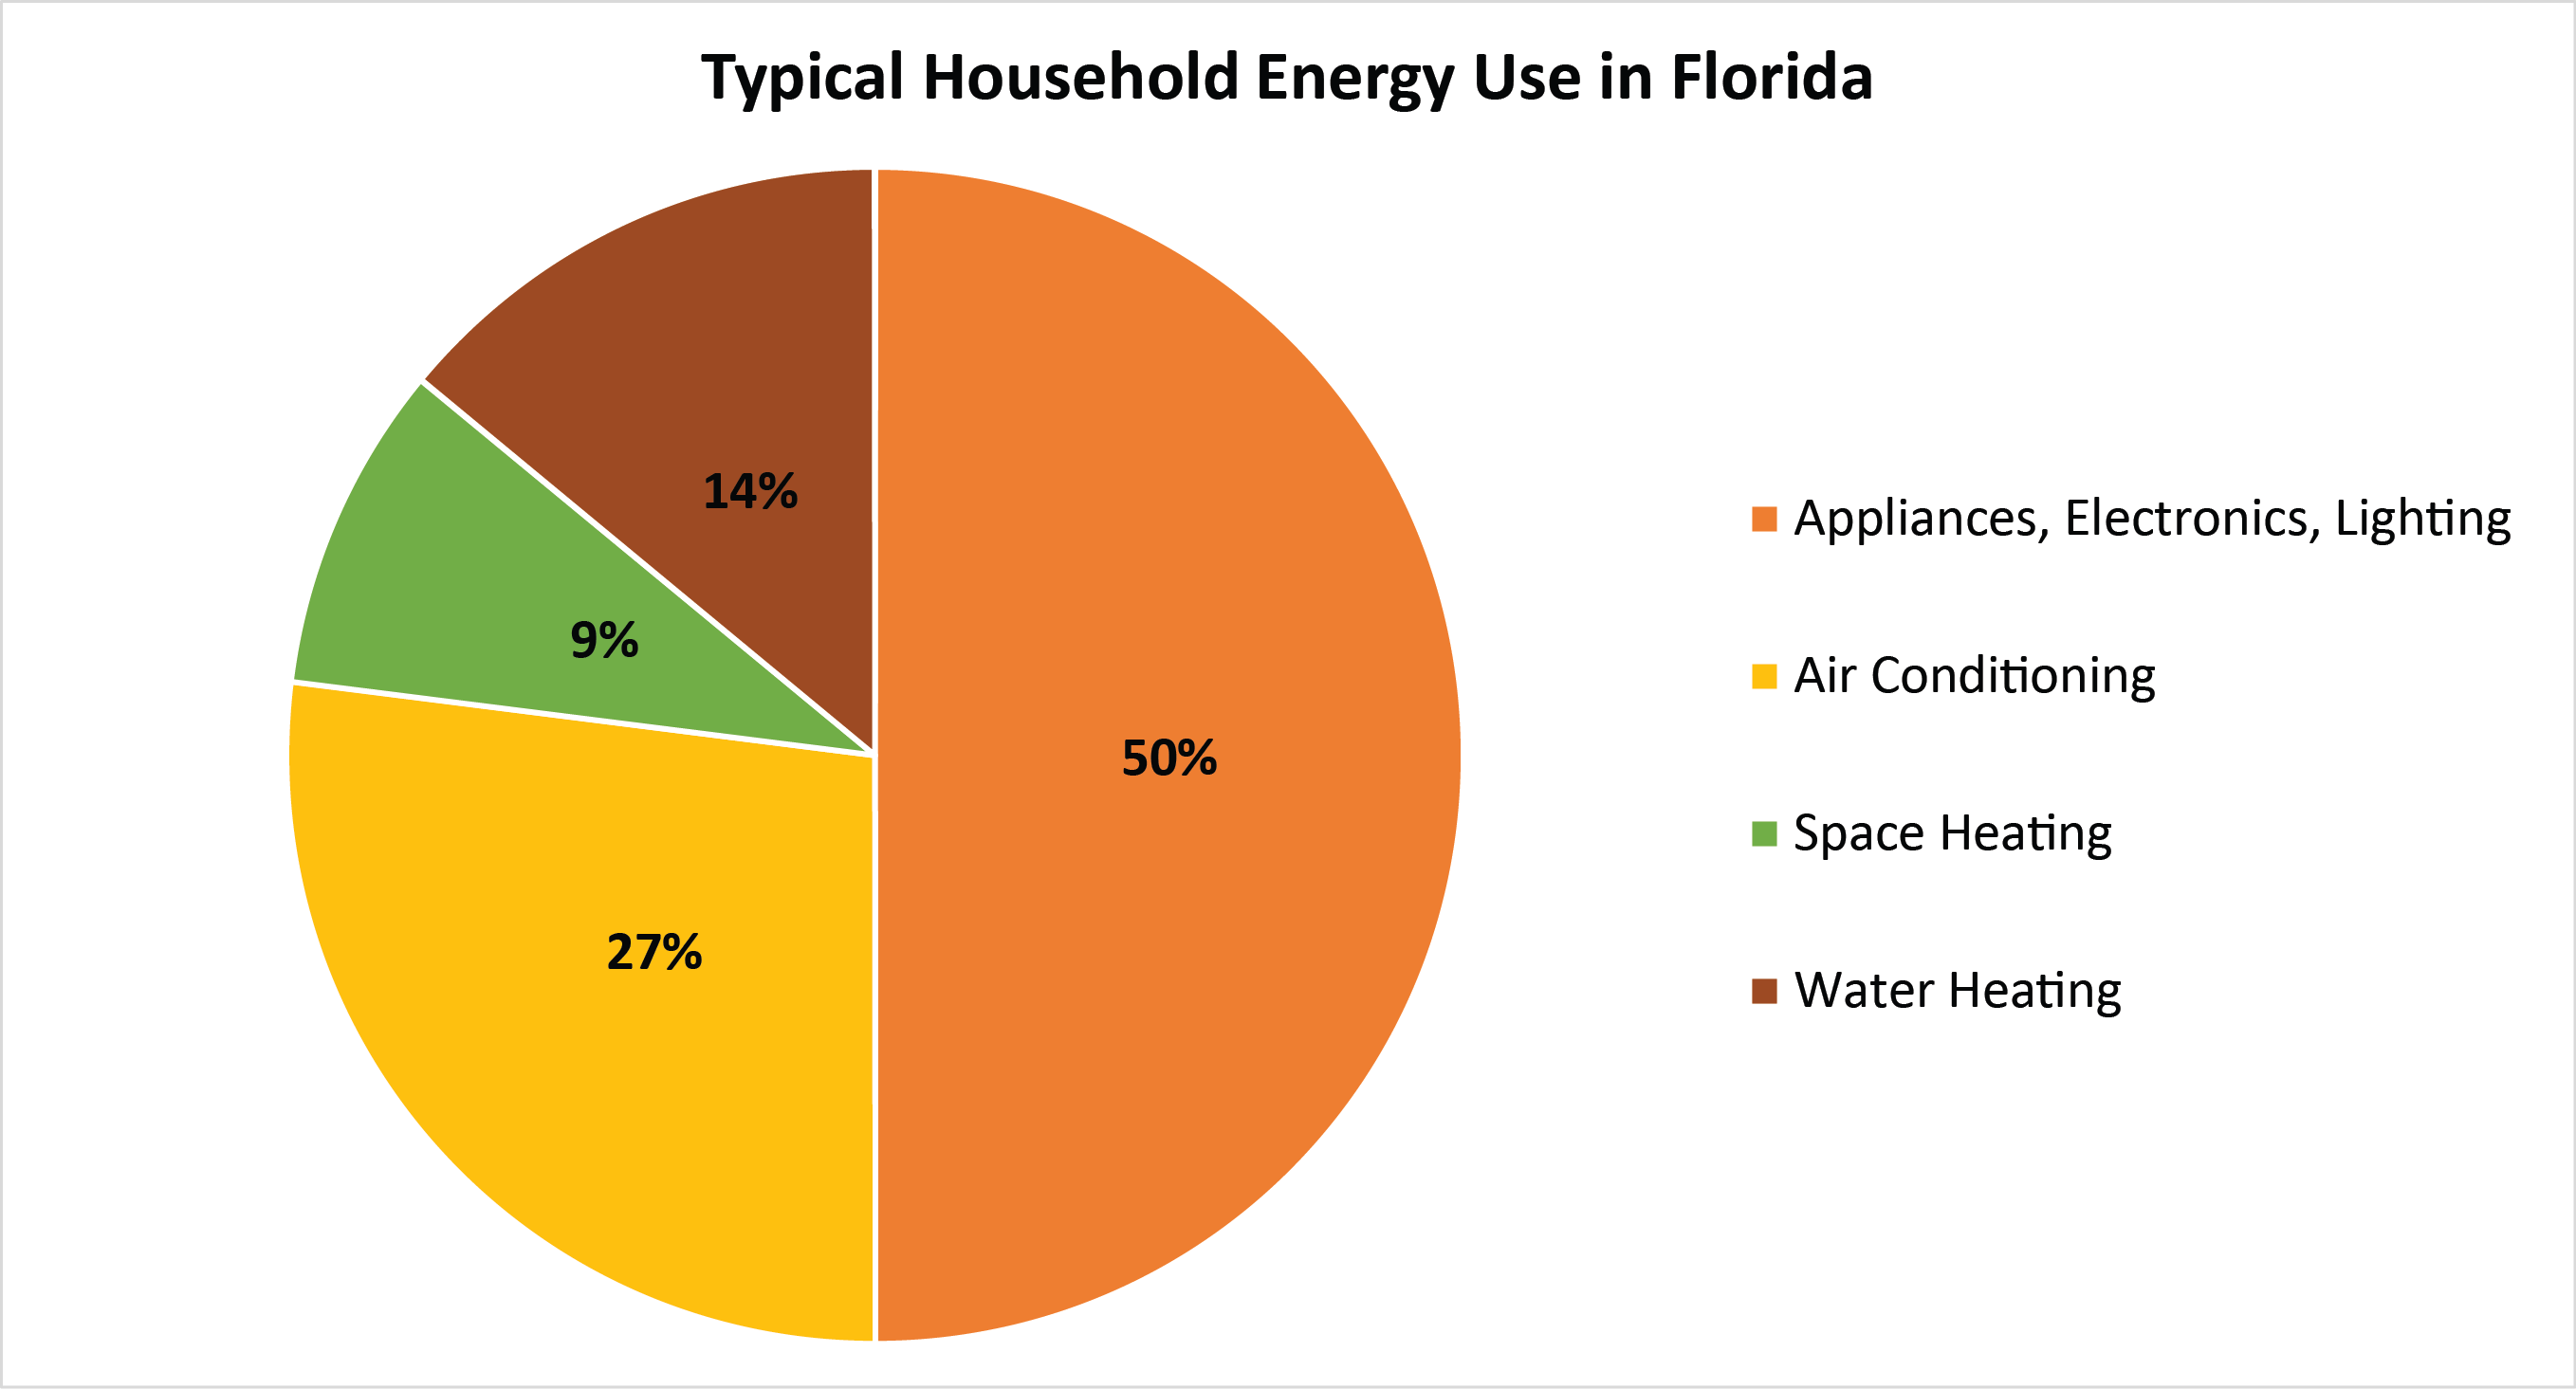 Home Energy Basics My Florida Building Wiring Diagram Typical Household End Use In Data Source Eia 2009